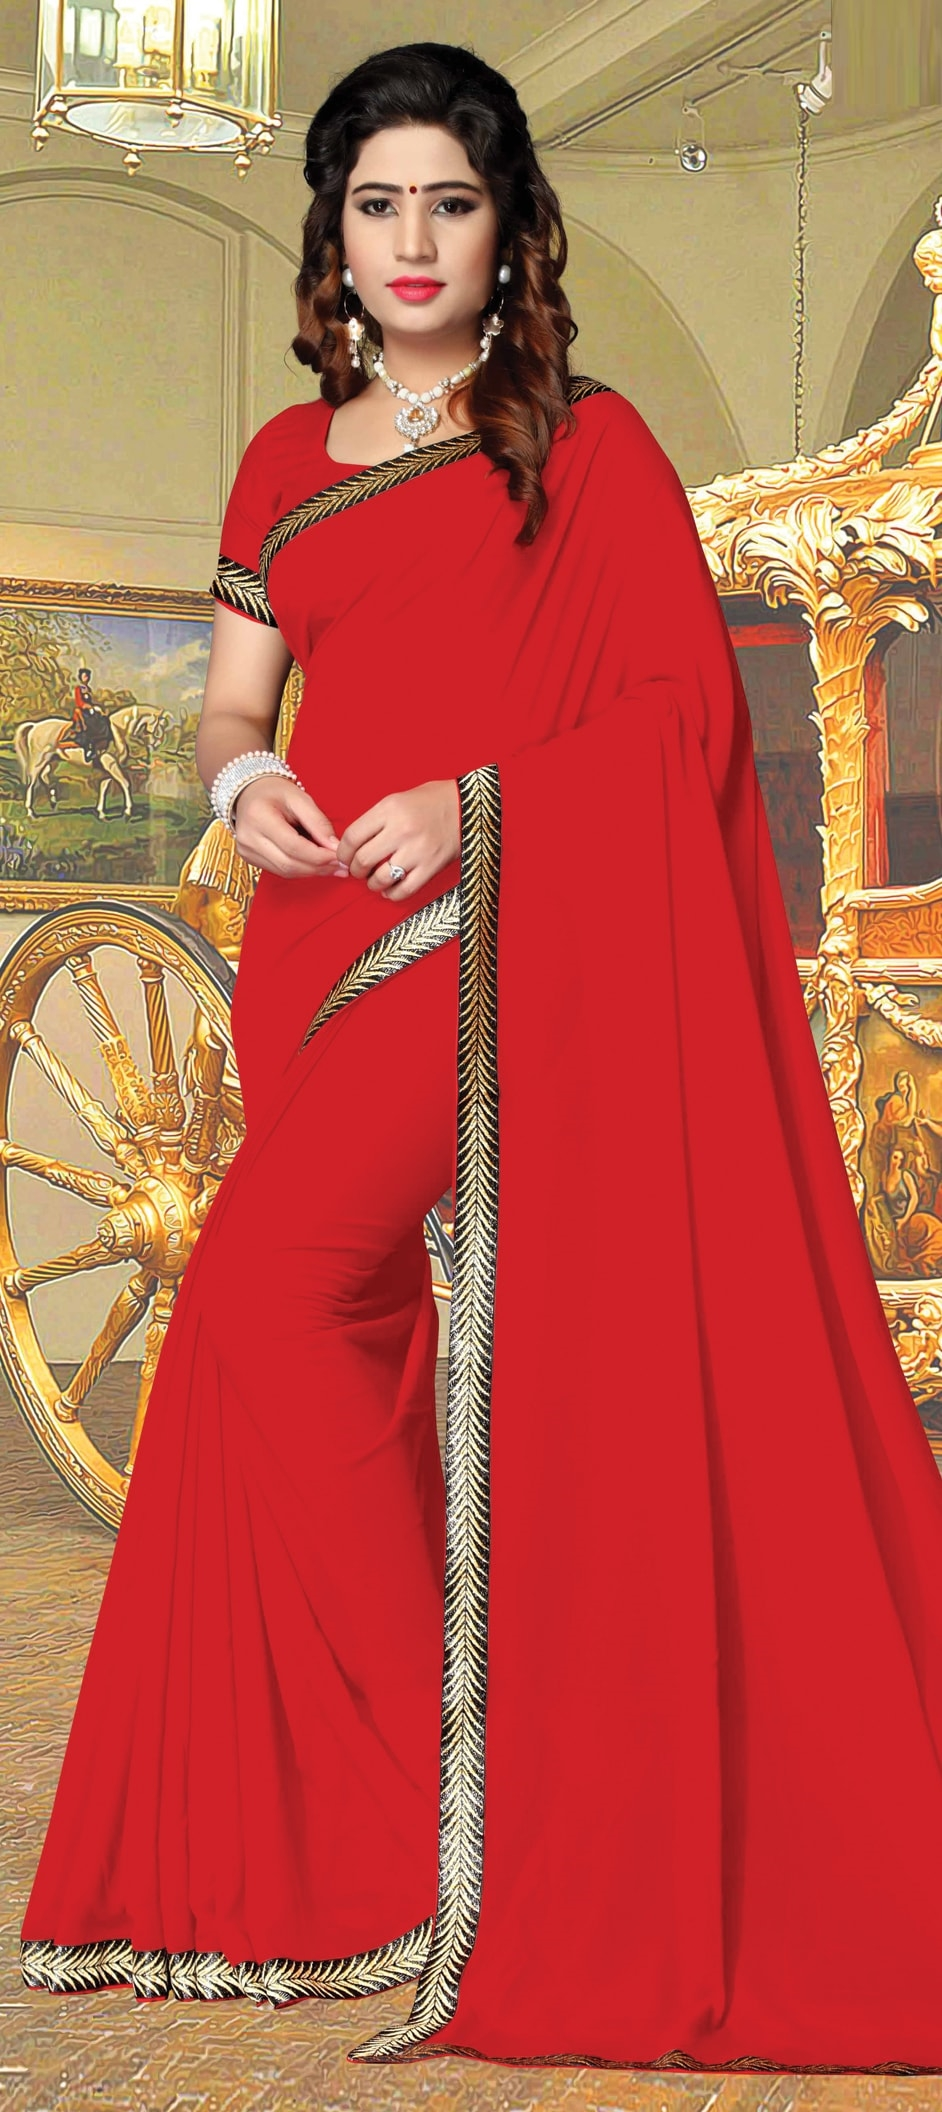 774392: Red and Maroon color family Party Wear Sarees with matching ...